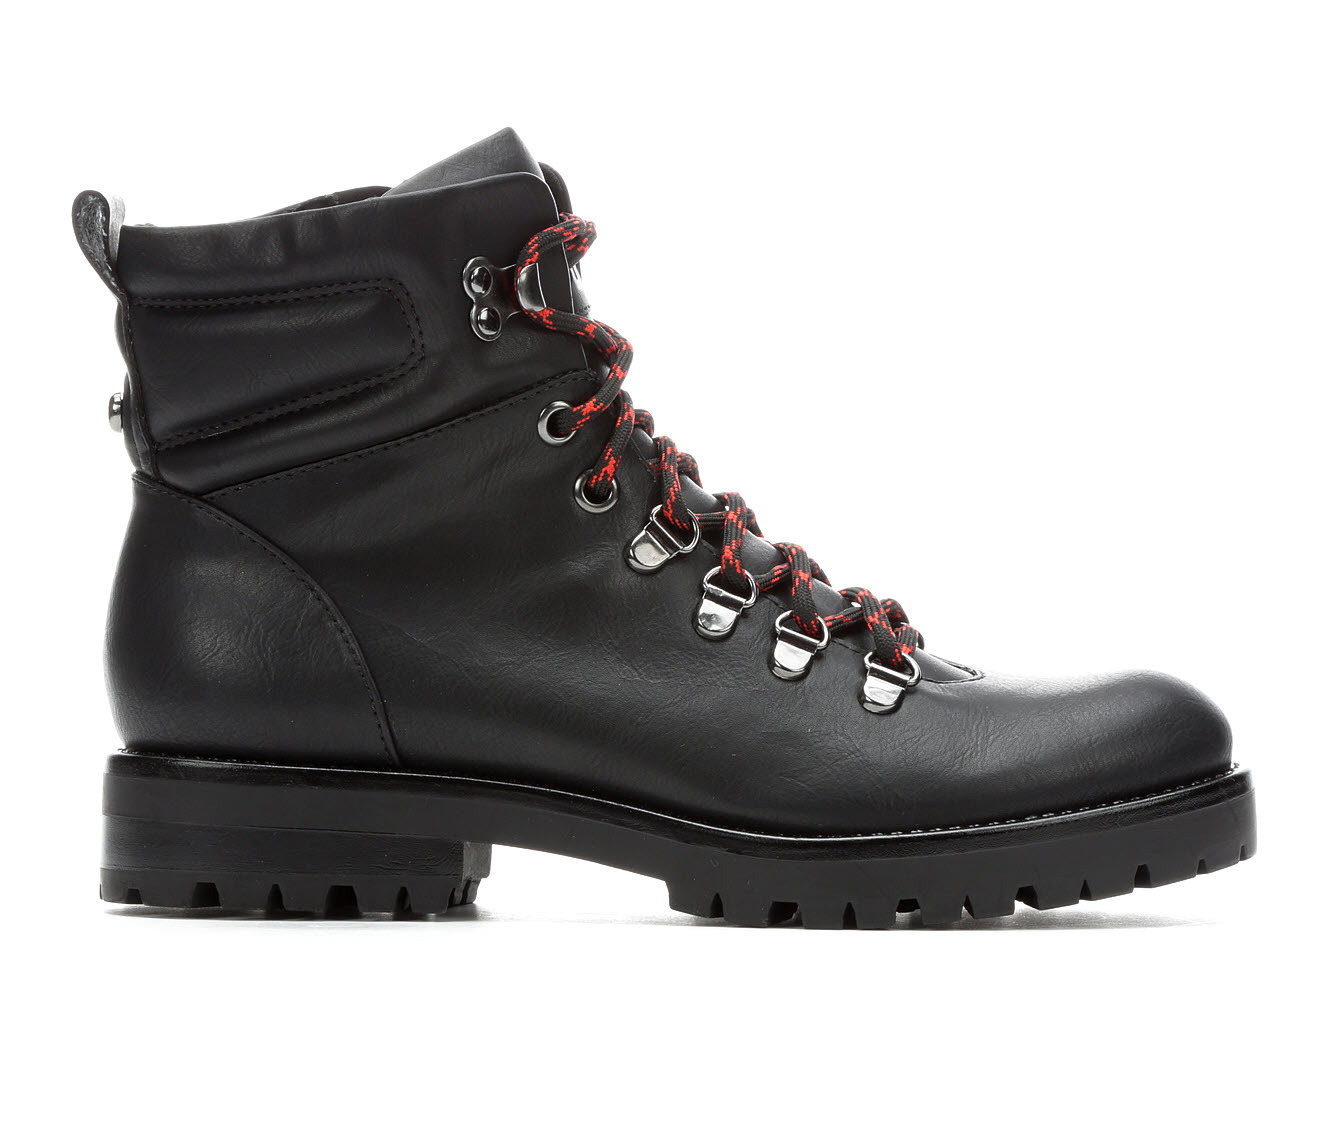 G By Guess Nallie 2 Women's Boots (Black - Faux Leather)